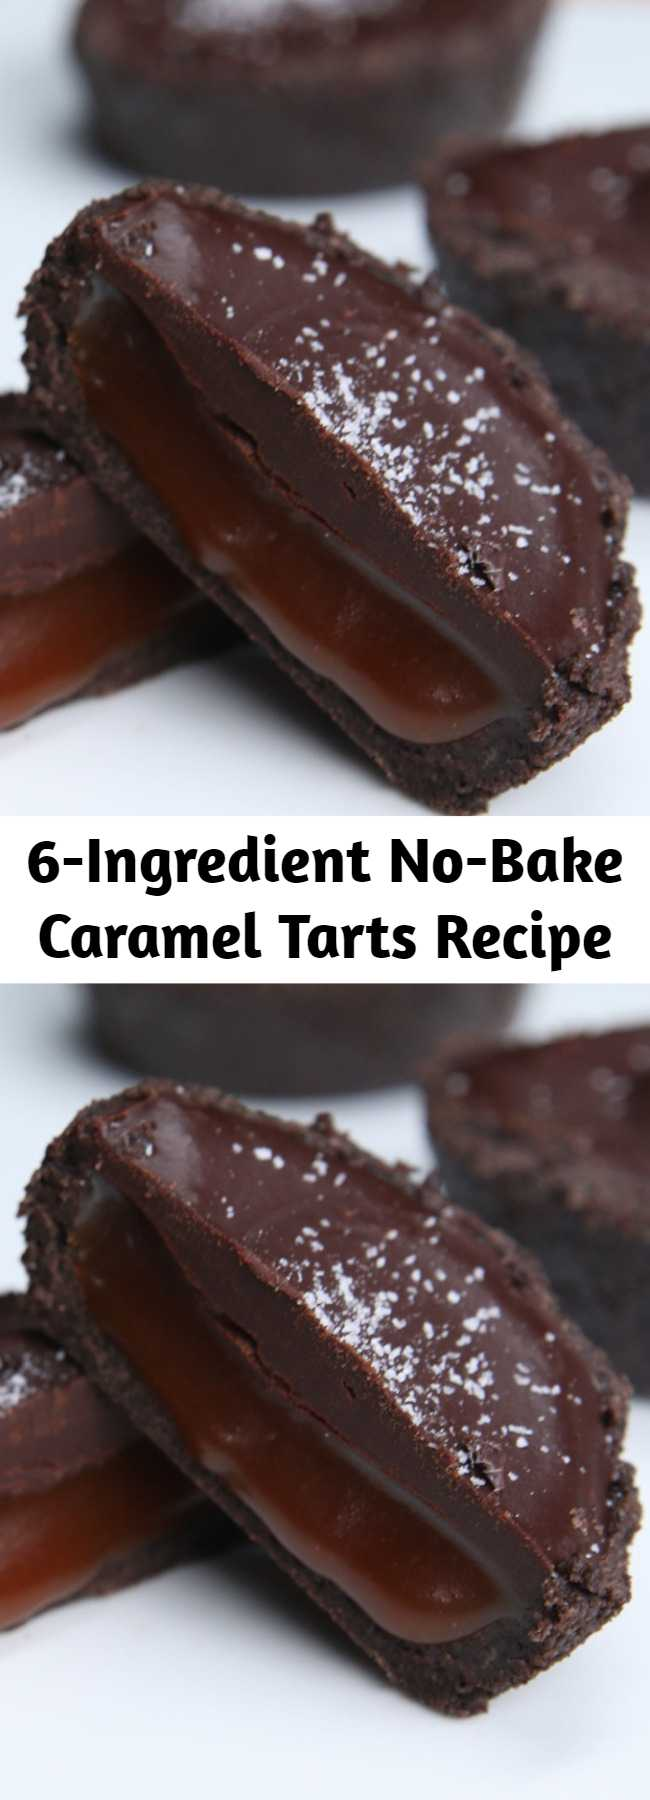 6-Ingredient No-Bake Caramel Tarts Recipe - This is seriously one of the easiest, most impressive desserts ever.